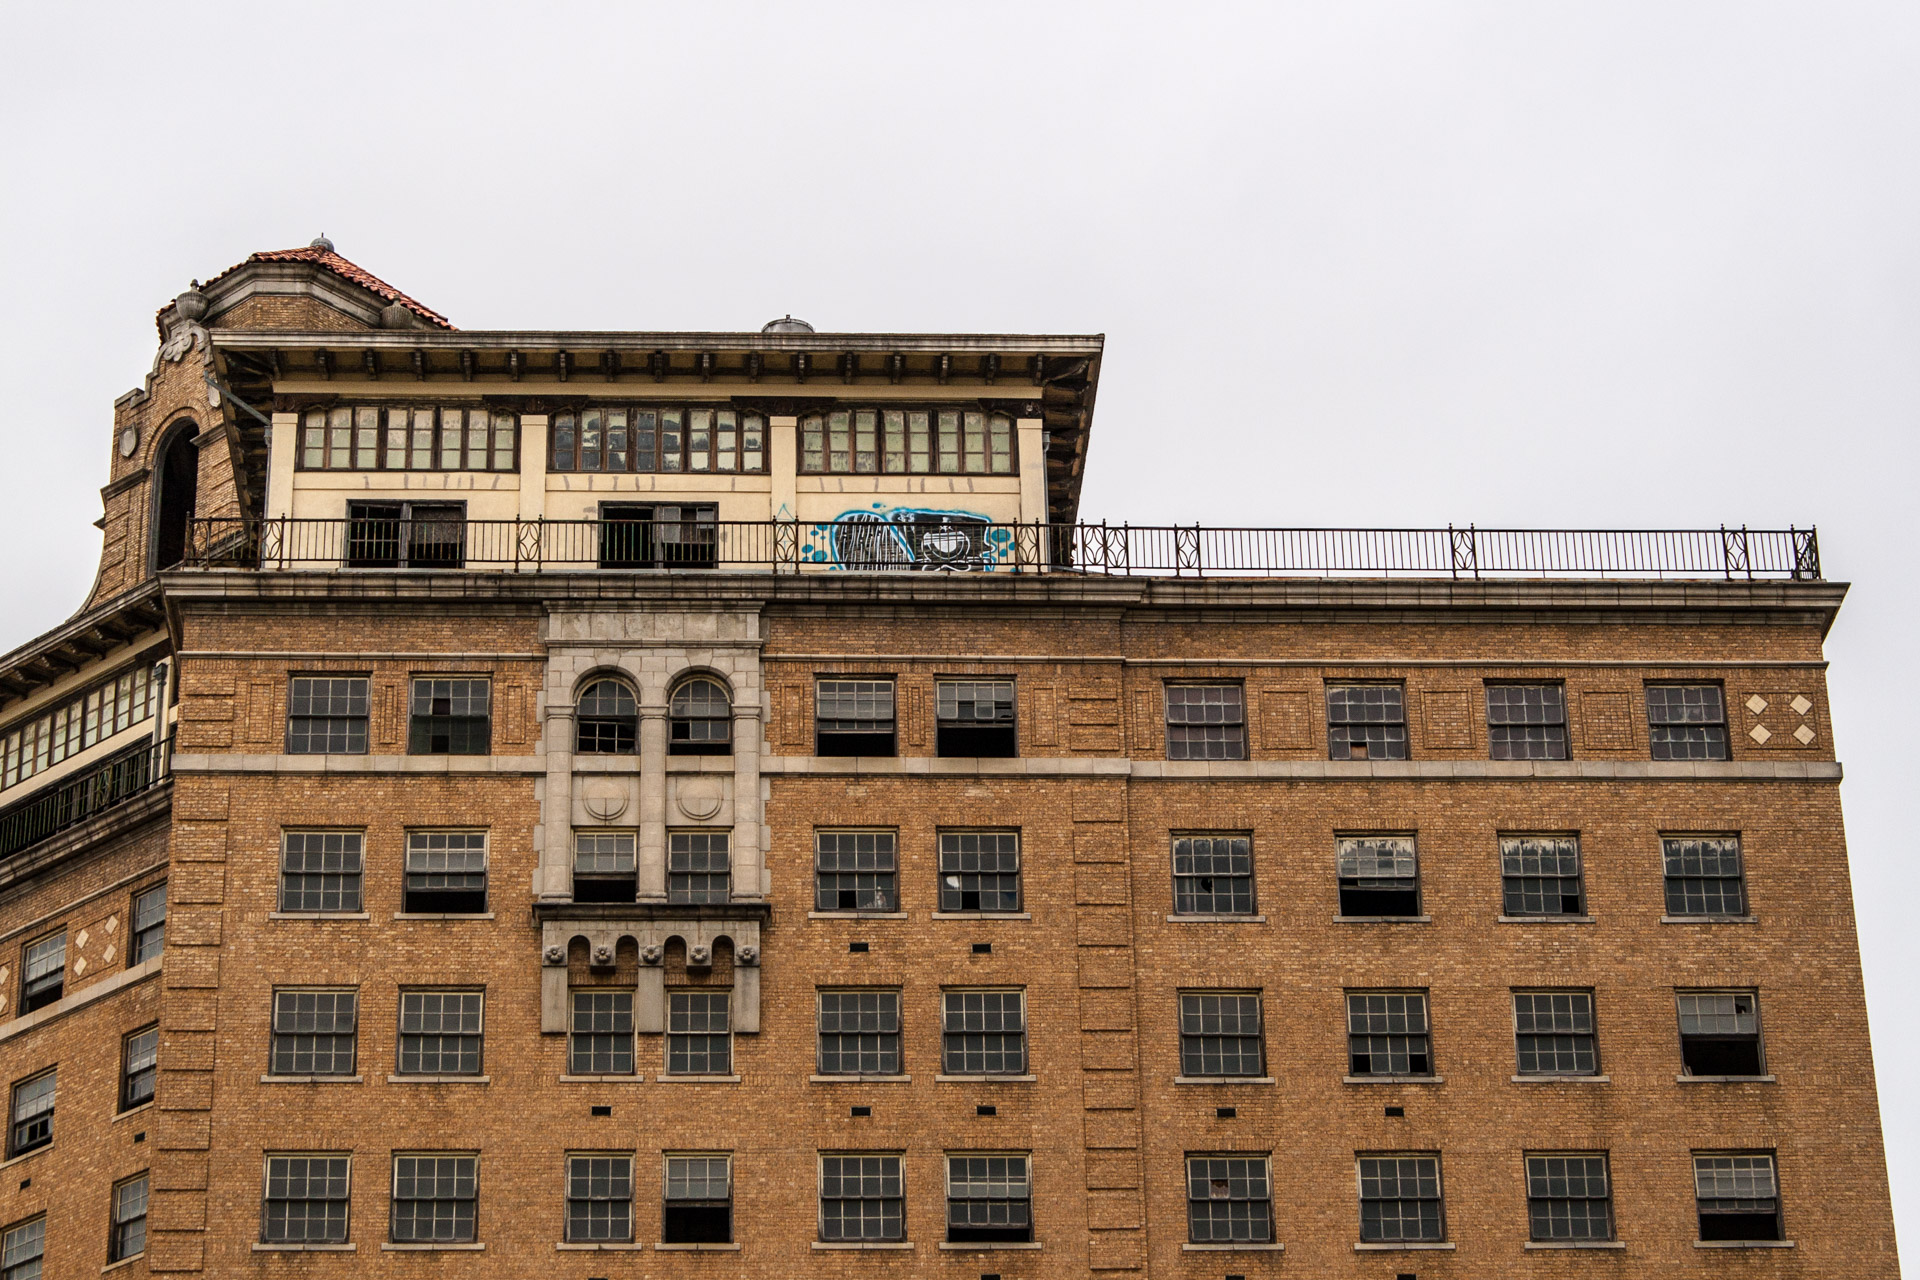 The Baker Hotel Part 1 (side top)